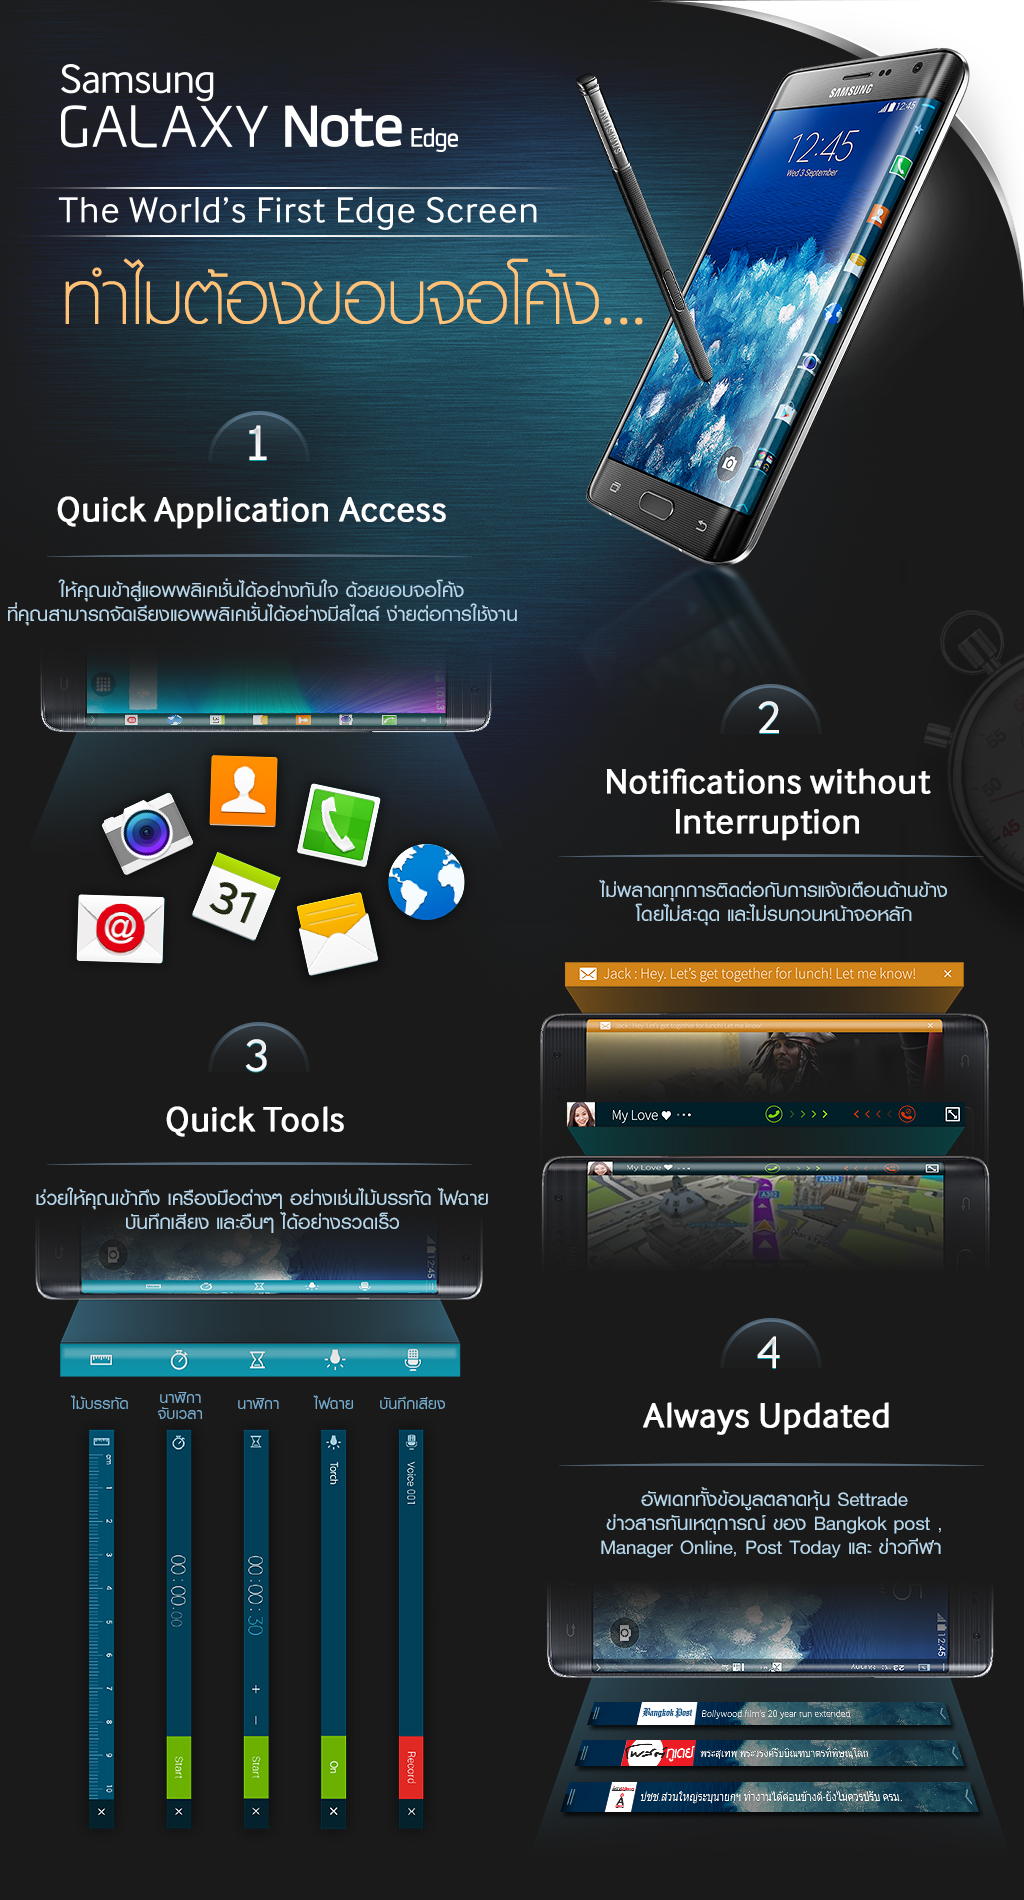 20150303_Samsung_NoteEdge_InfoGraphic